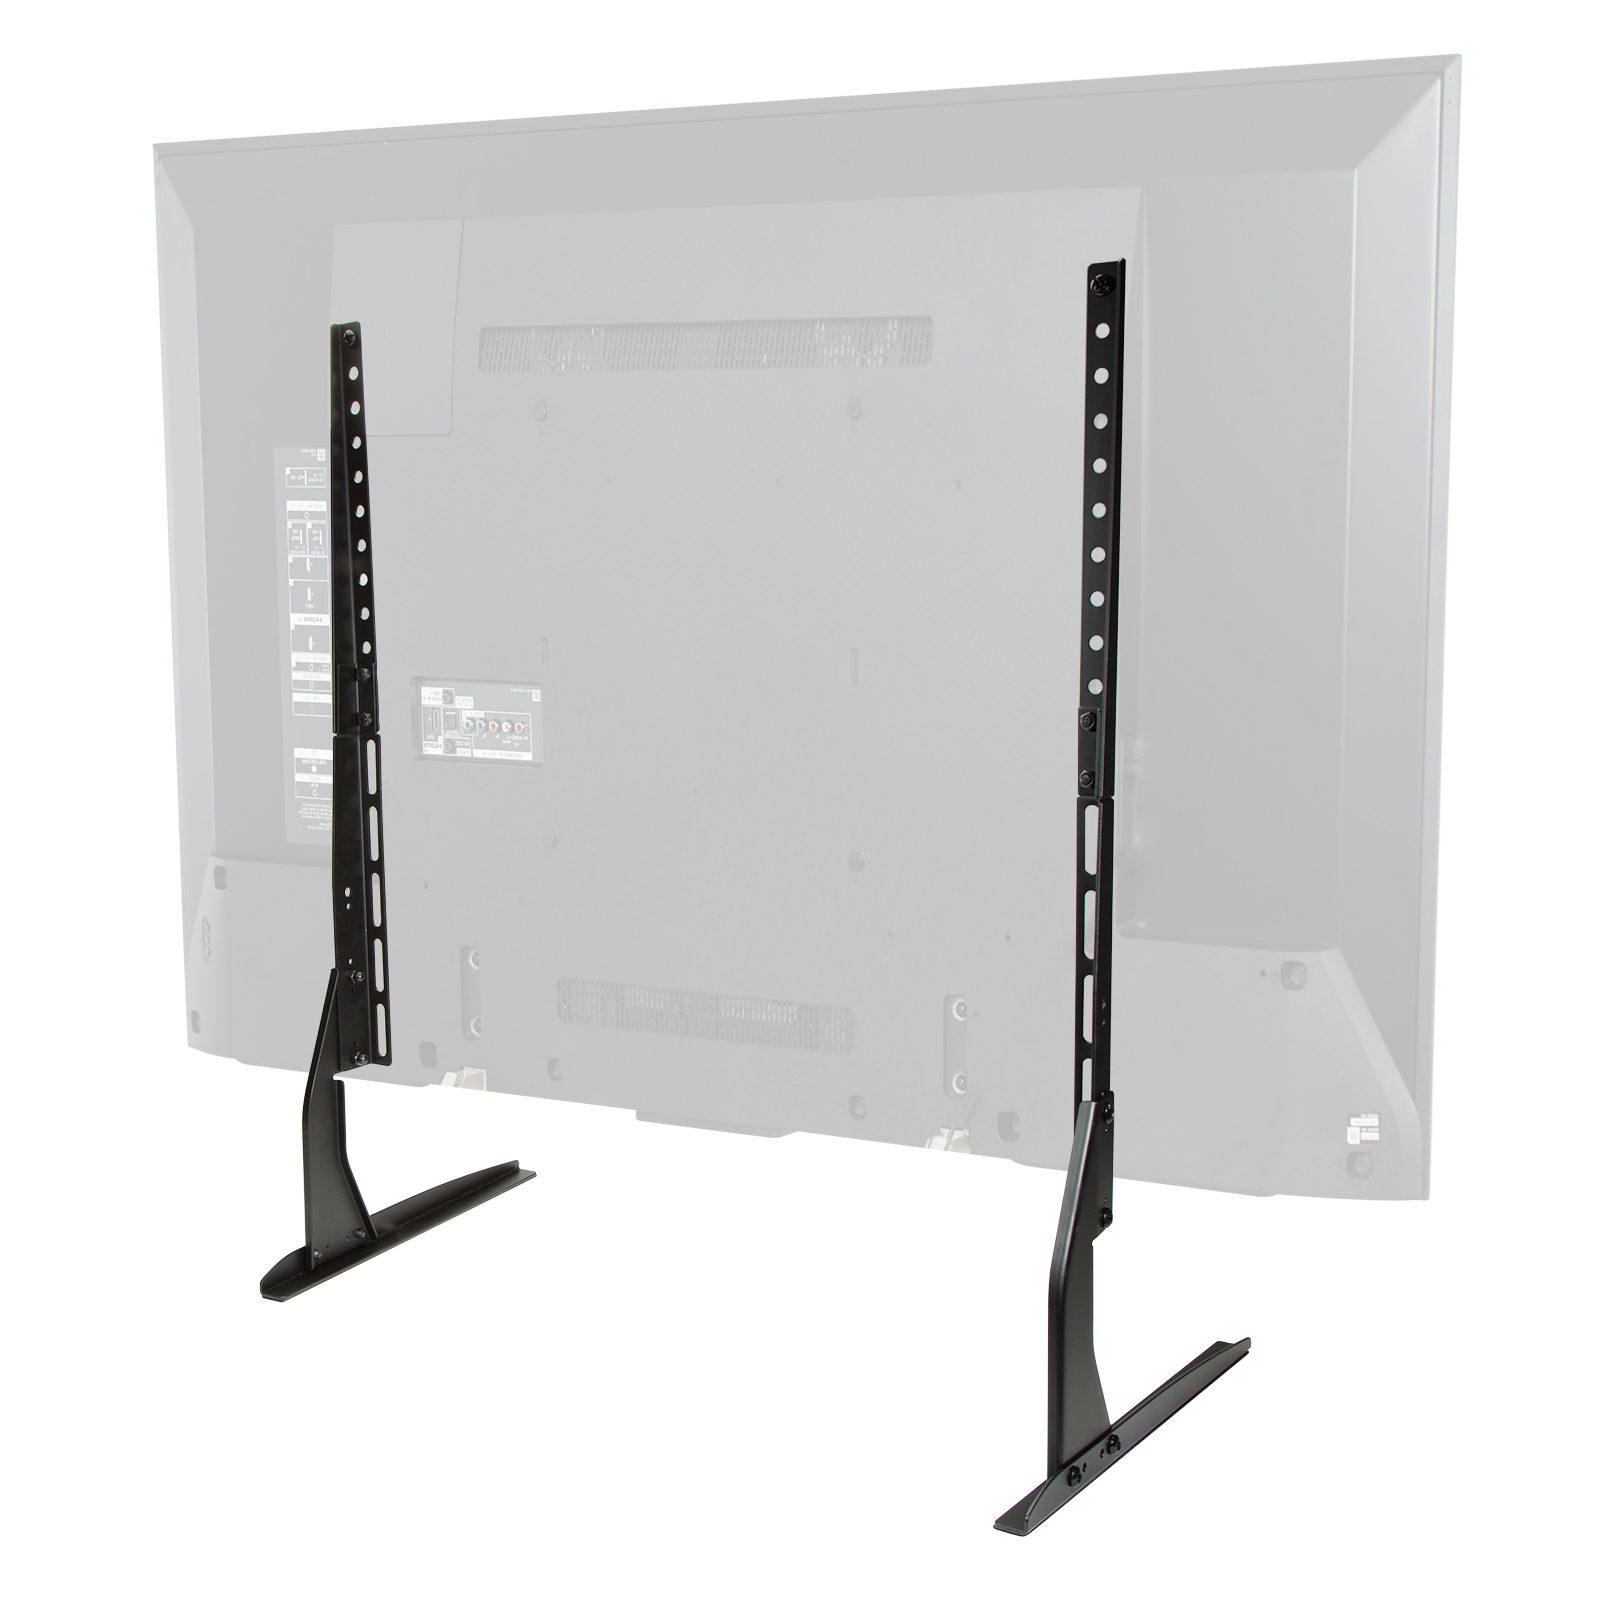 Popular Mix Wholesale: Mount Factory Modern Tabletop Tv Stand – Universal Pertaining To Universal Flat Screen Tv Stands (View 9 of 20)